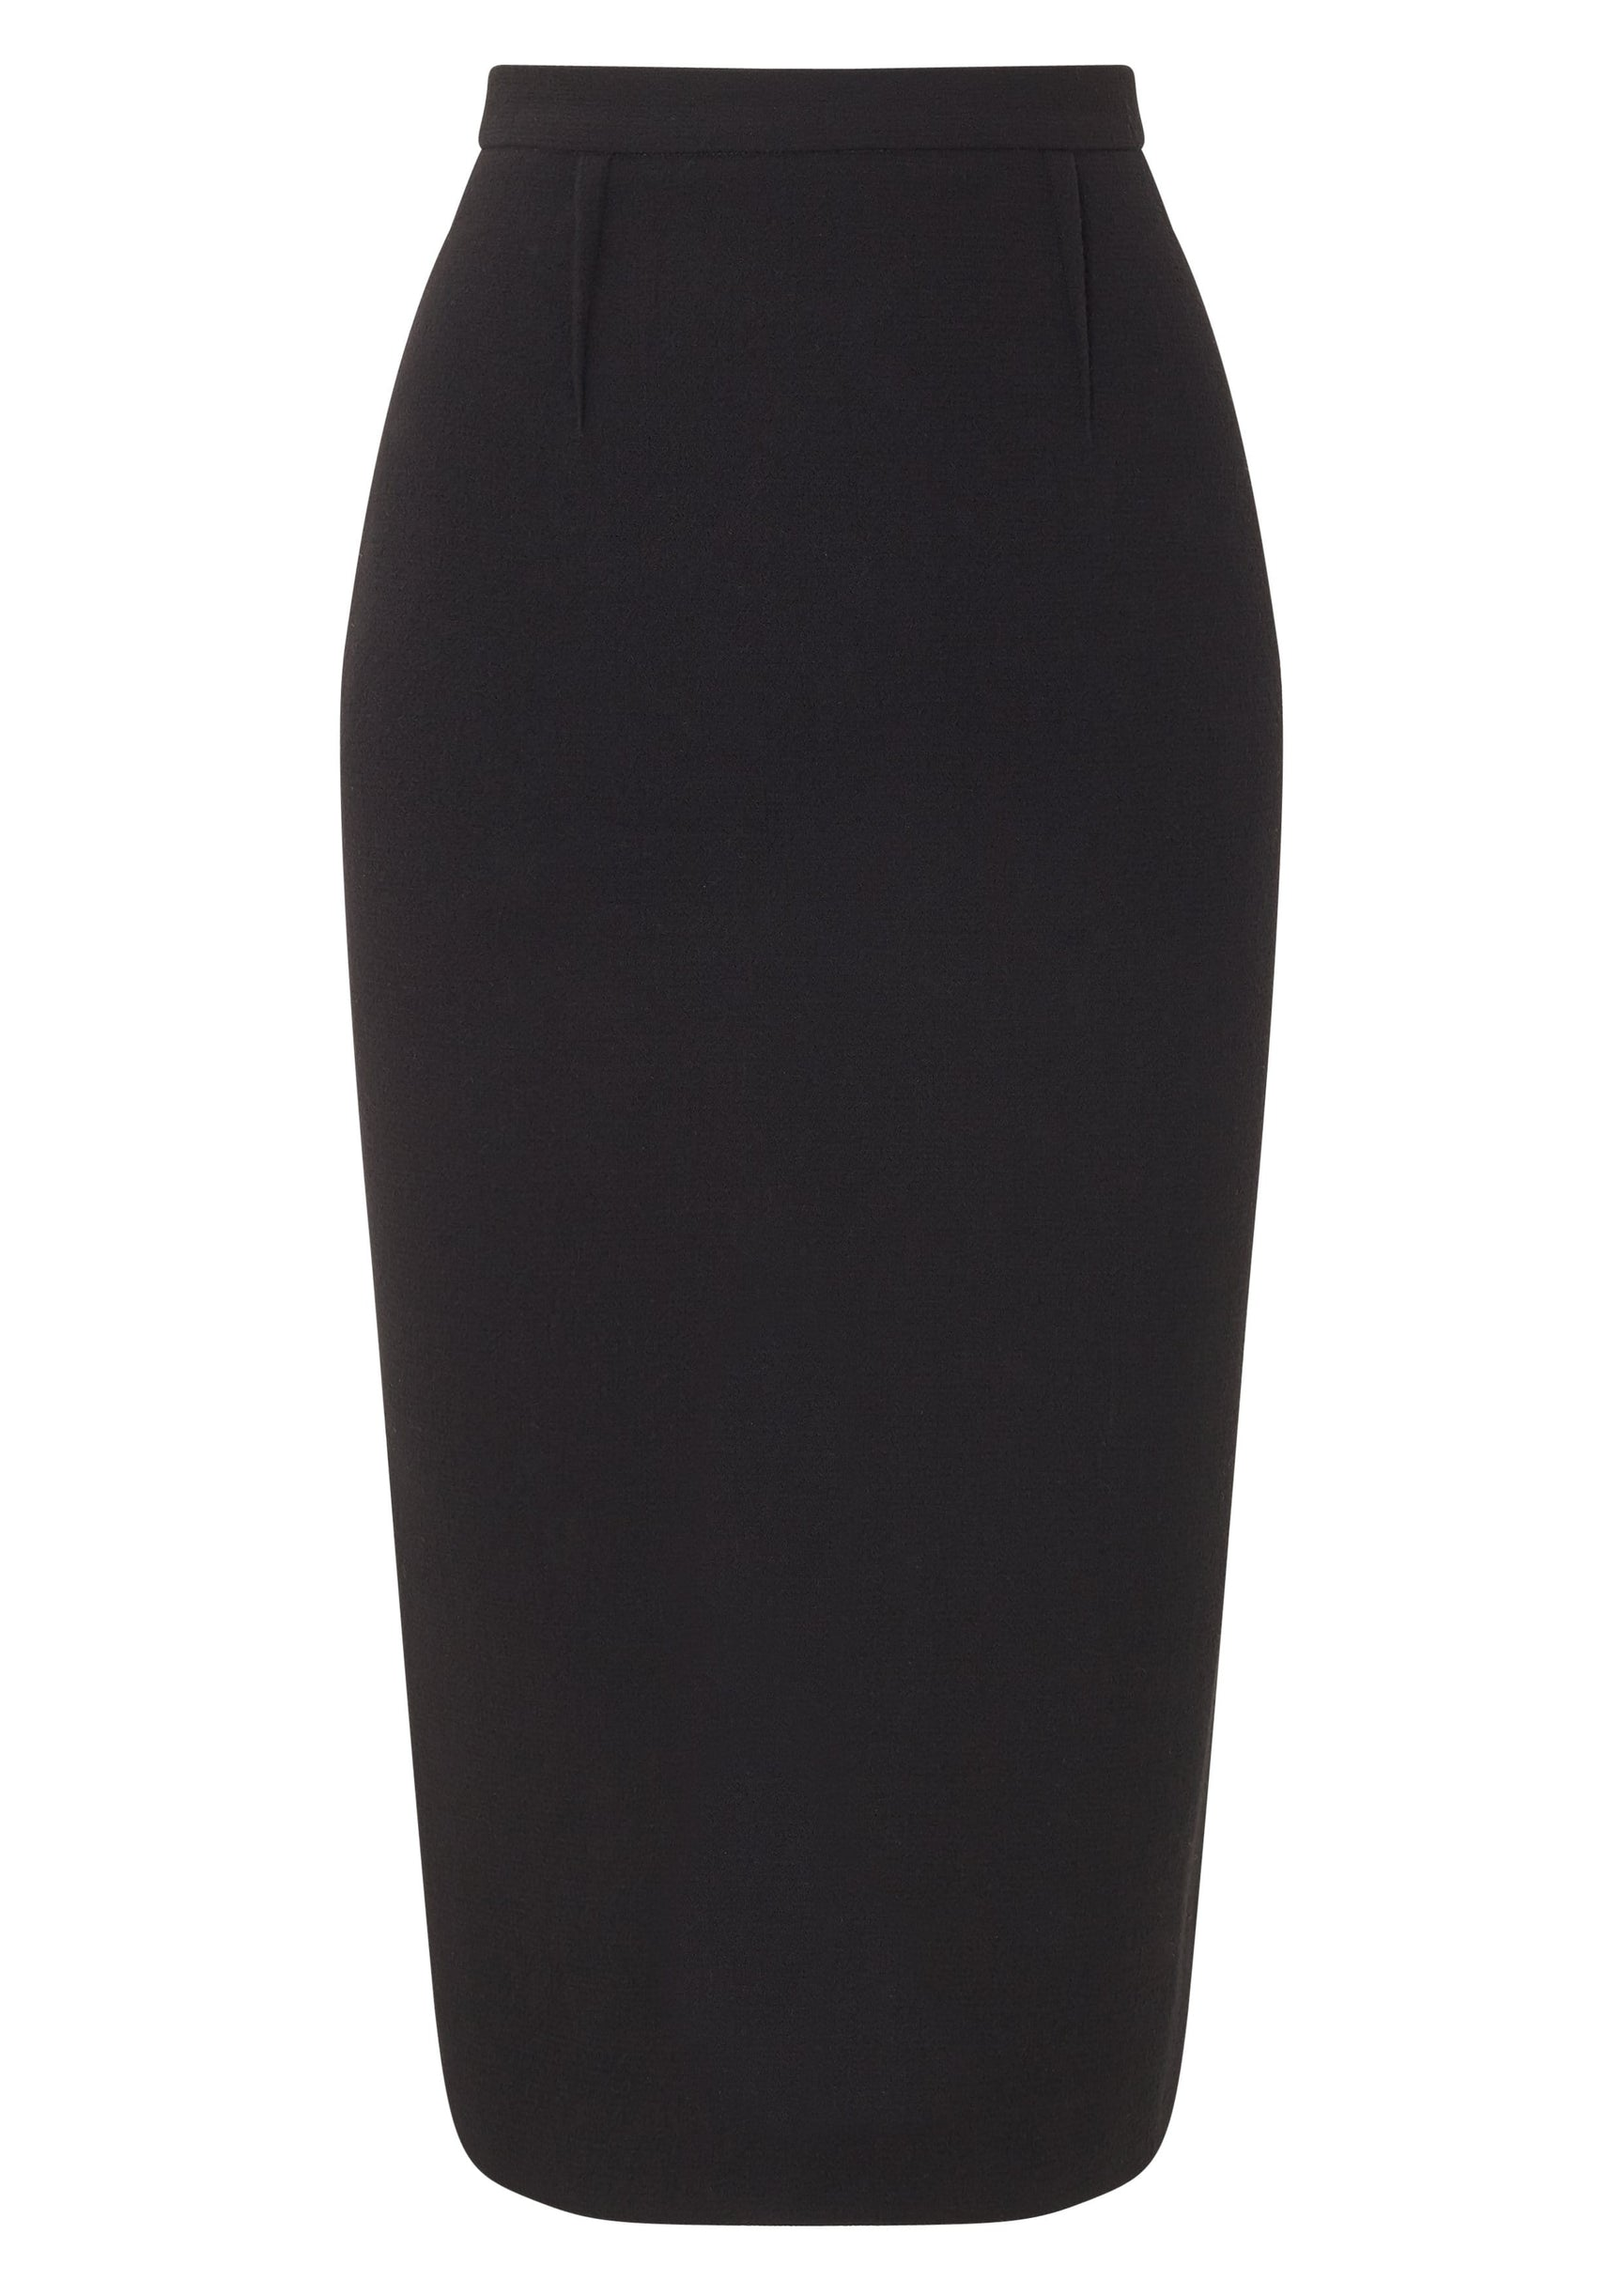 Arreton Skirt In Black from Roland Mouret